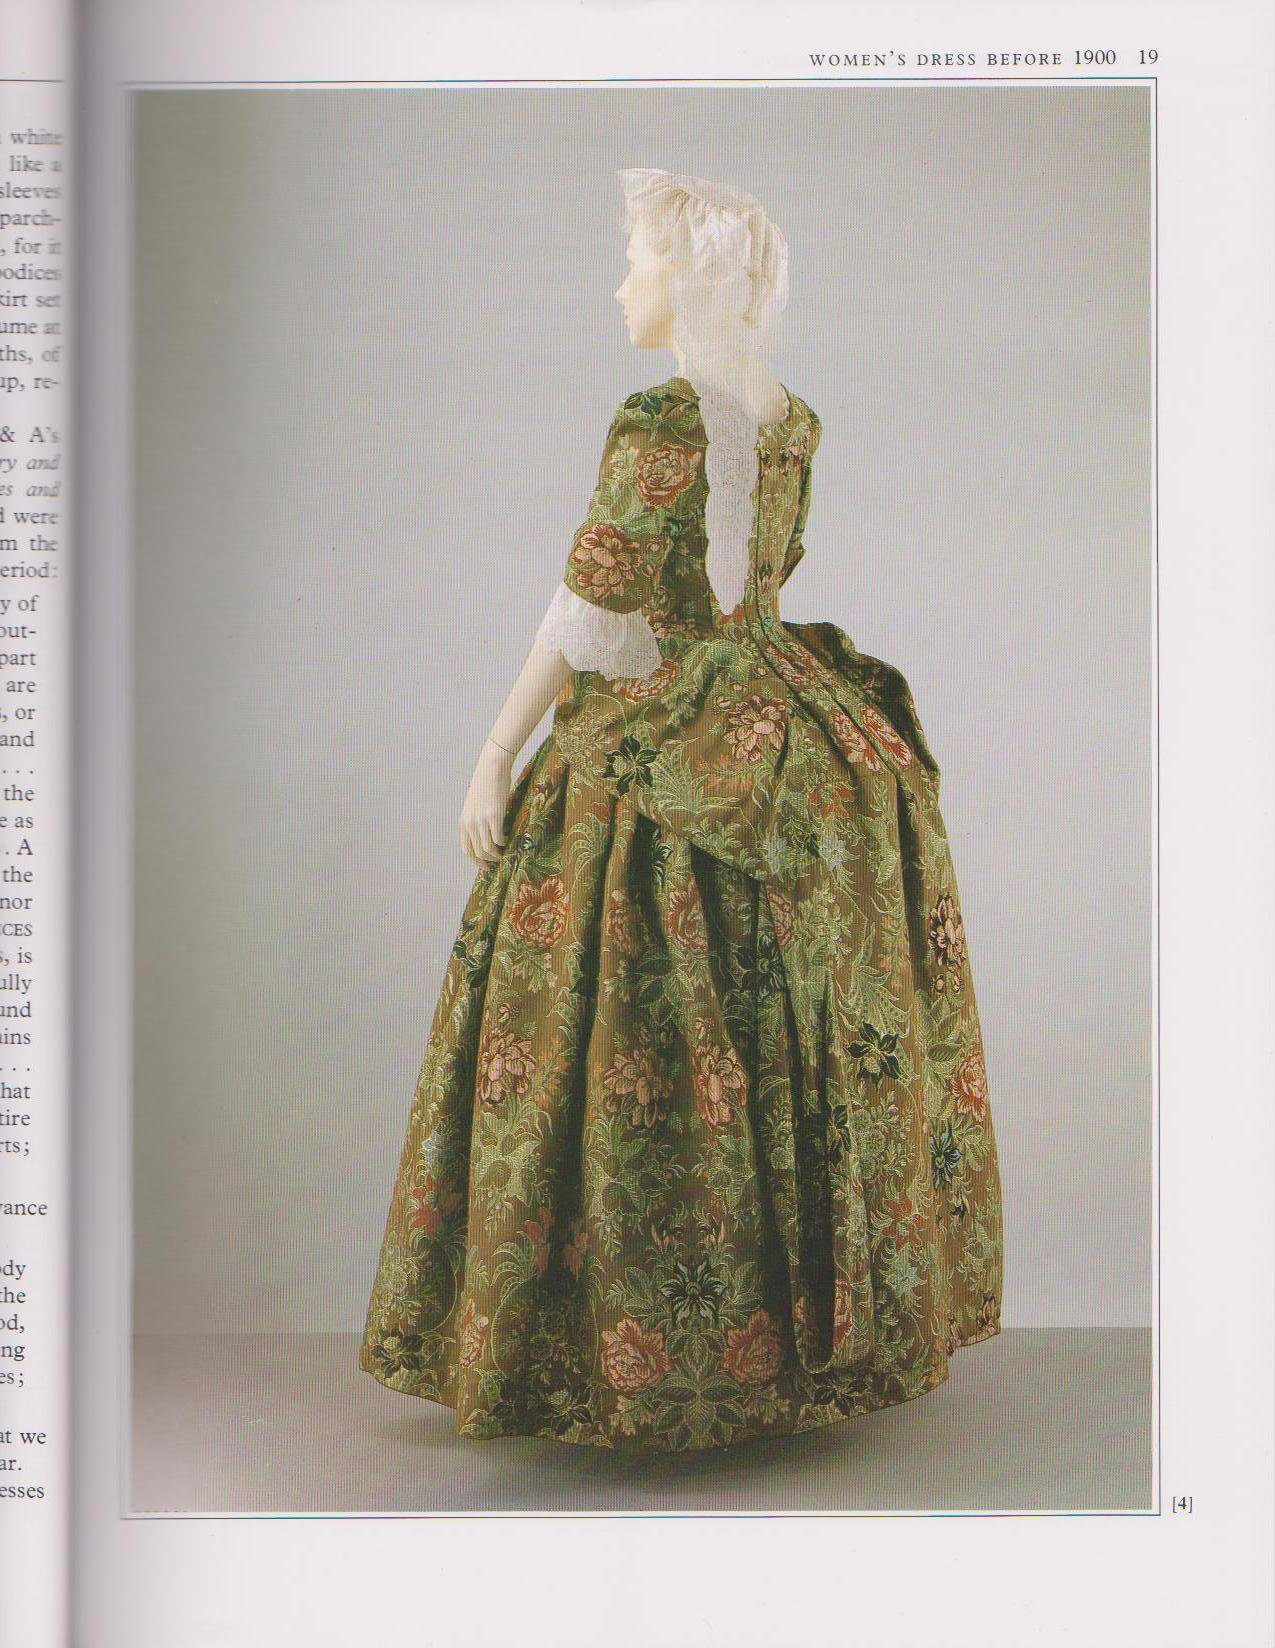 400 Years of Fashion - V&A Book - Inner Page 2 - HandBound Eighteenth Century Costume Bibliography - Eighteenth Century Clothing - Georgian Costume - 1700's costume